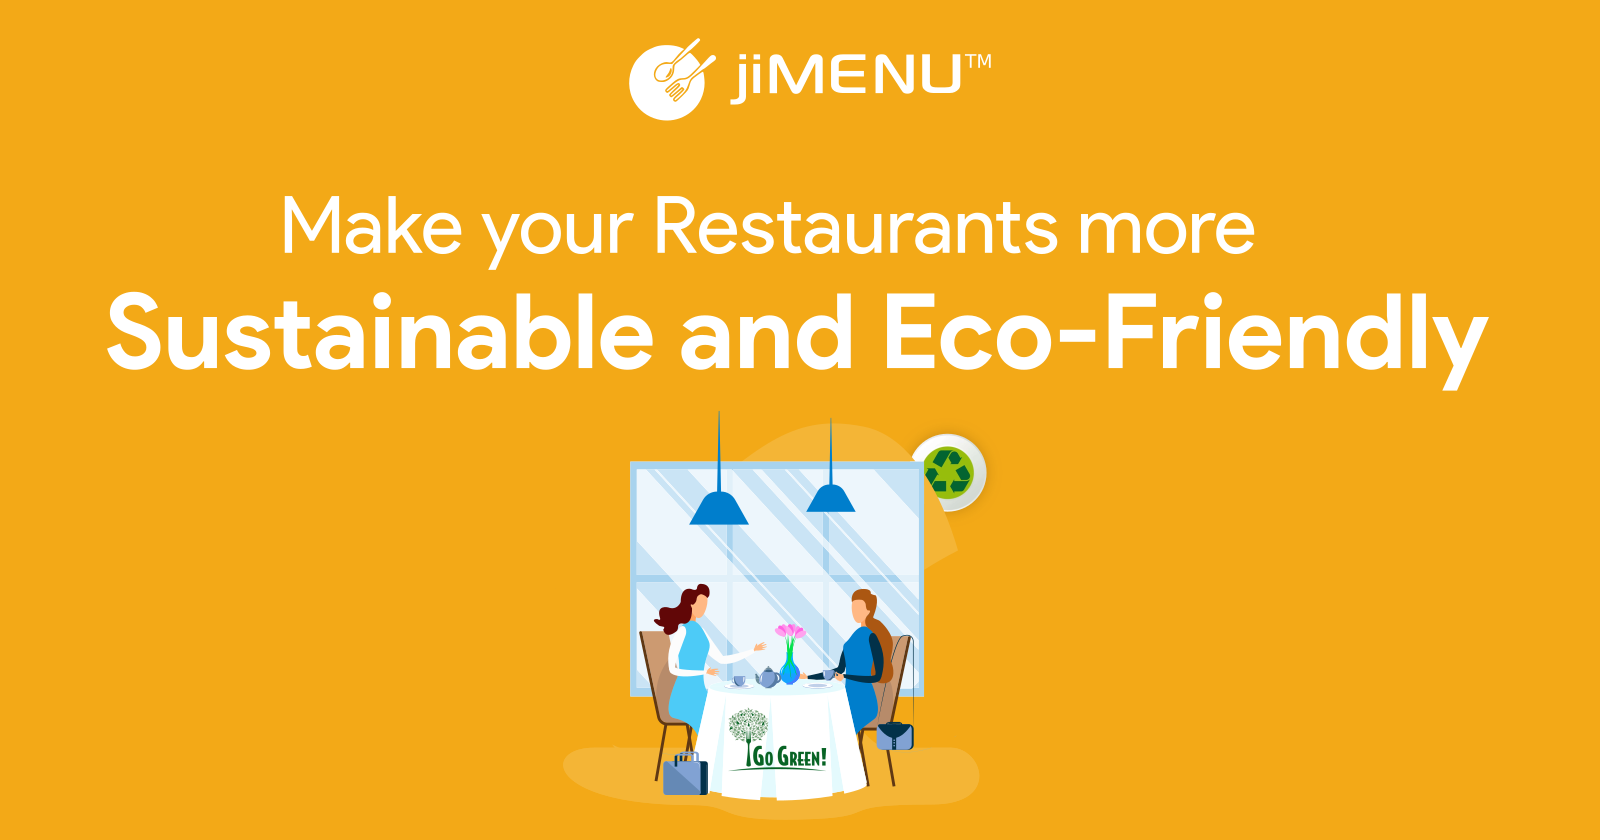 Make Your Restaurants More Sustainable and Eco-Friendly